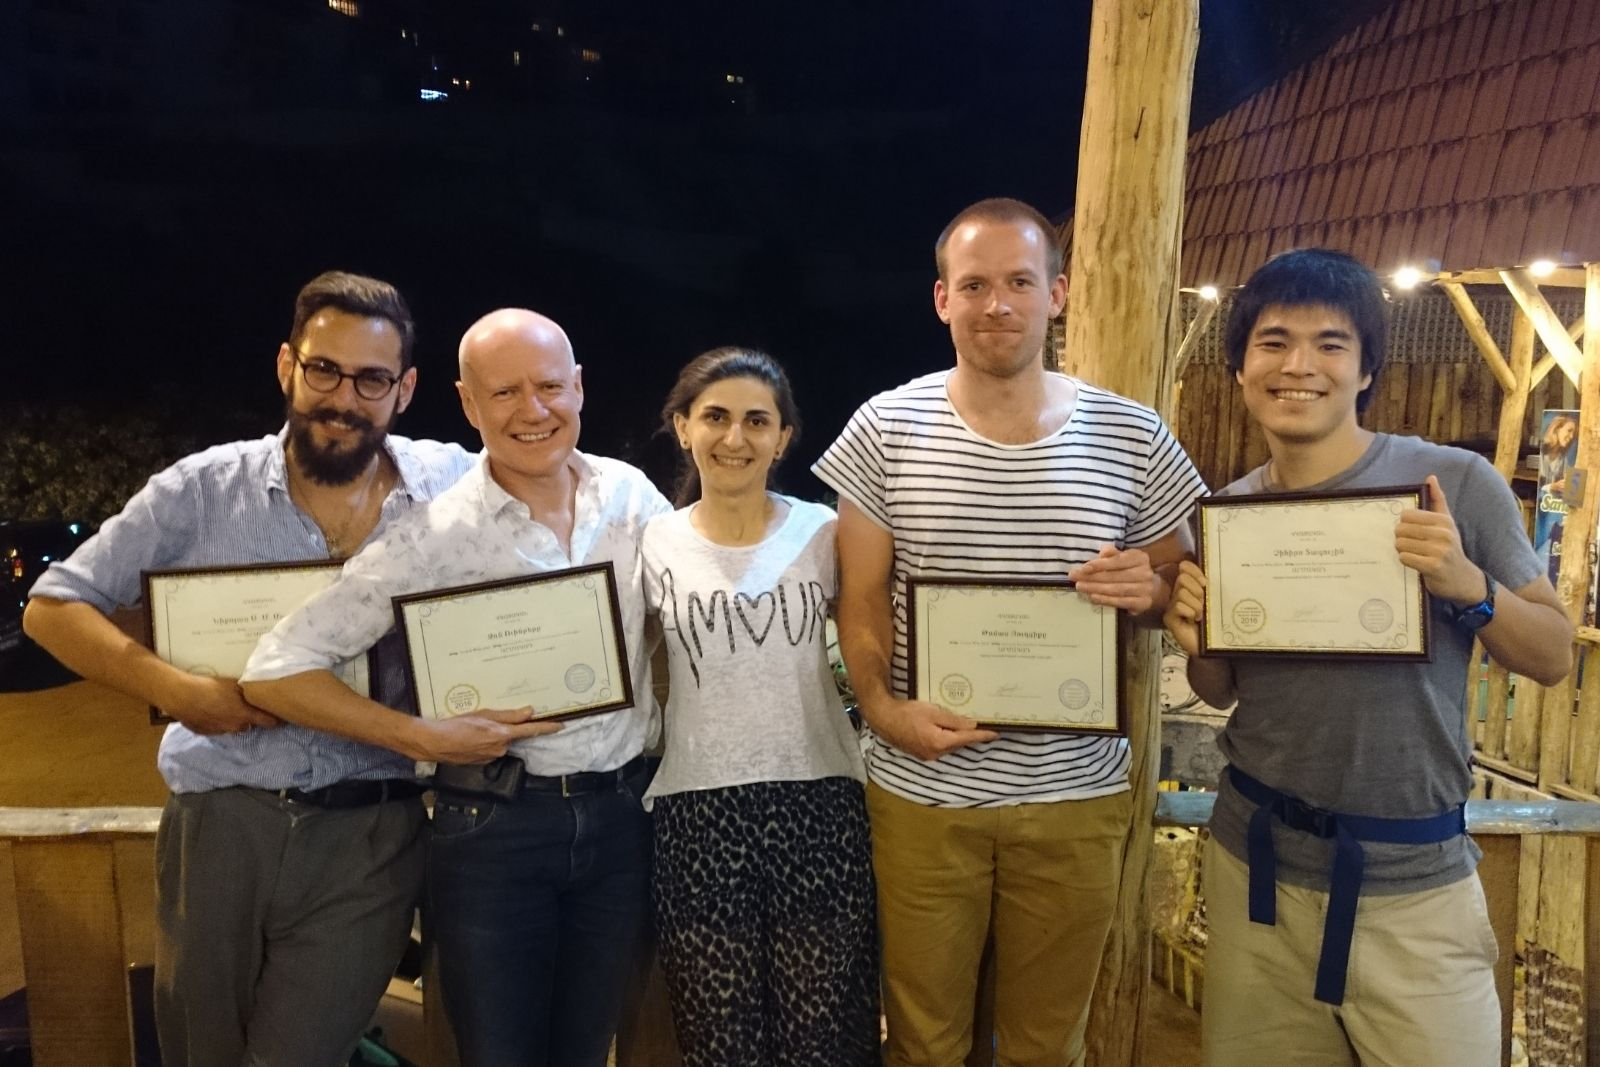 Participants of Armenian language summer school 2016 received their certificates. From left to right: Nicholas Matheou, John Wynter, Sona Mnatsakanyan (instructor of Armenian), Thomas Jurczyk, Chihiro Taguchi